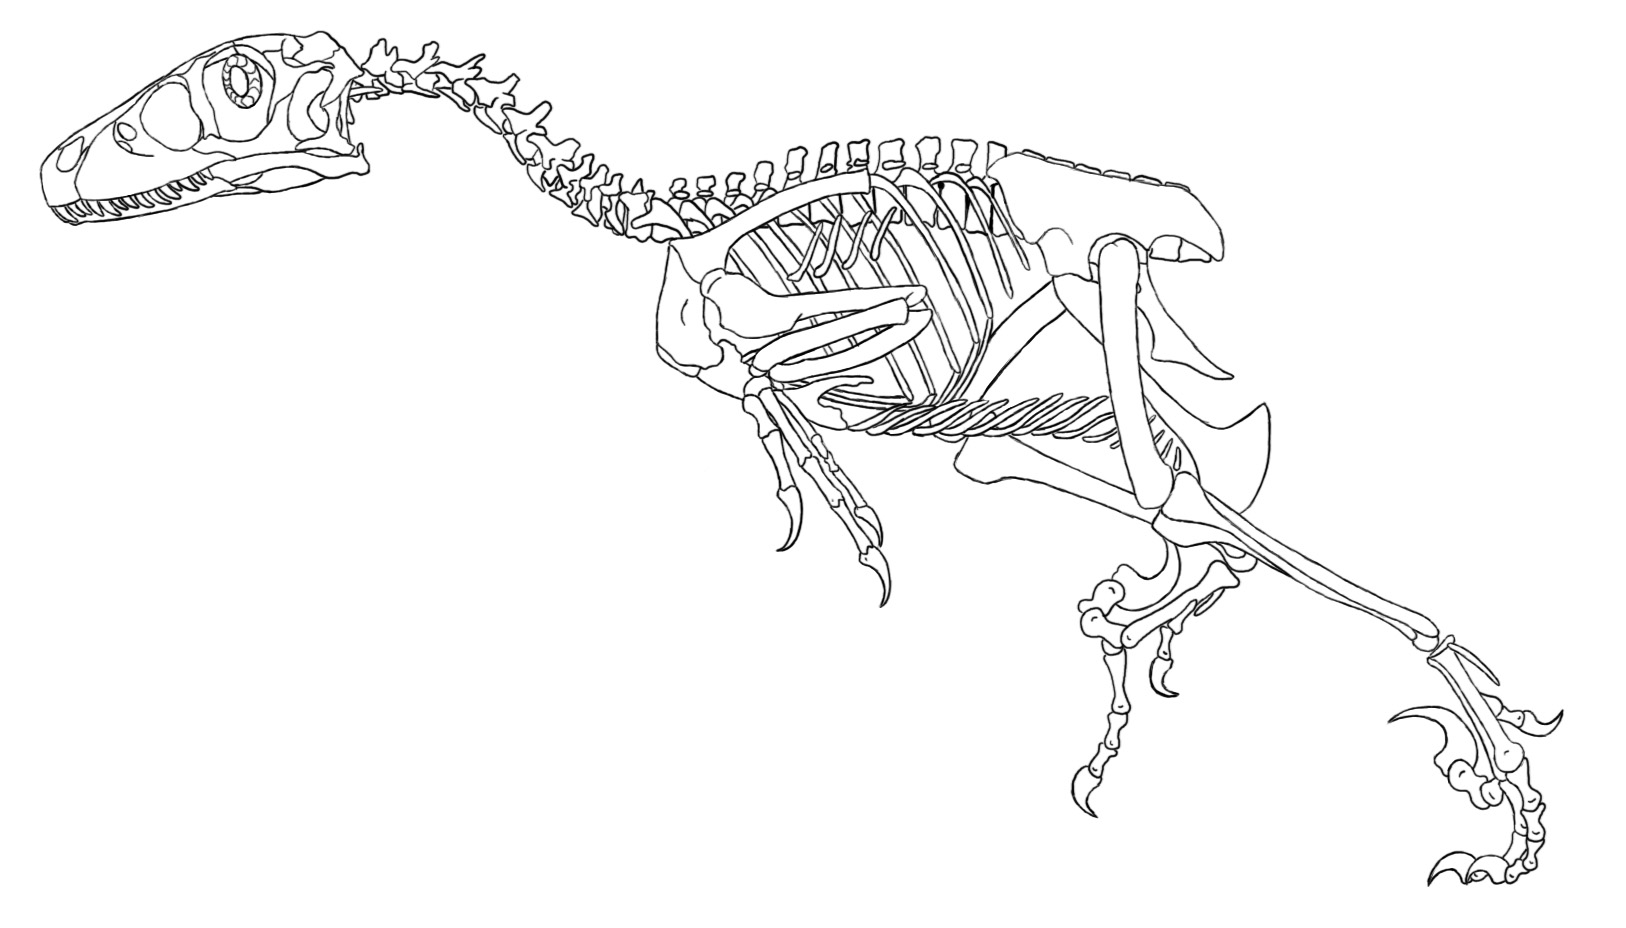 Deinonychus Skeleton Coloring Page Dinosaurs Pictures And Facts